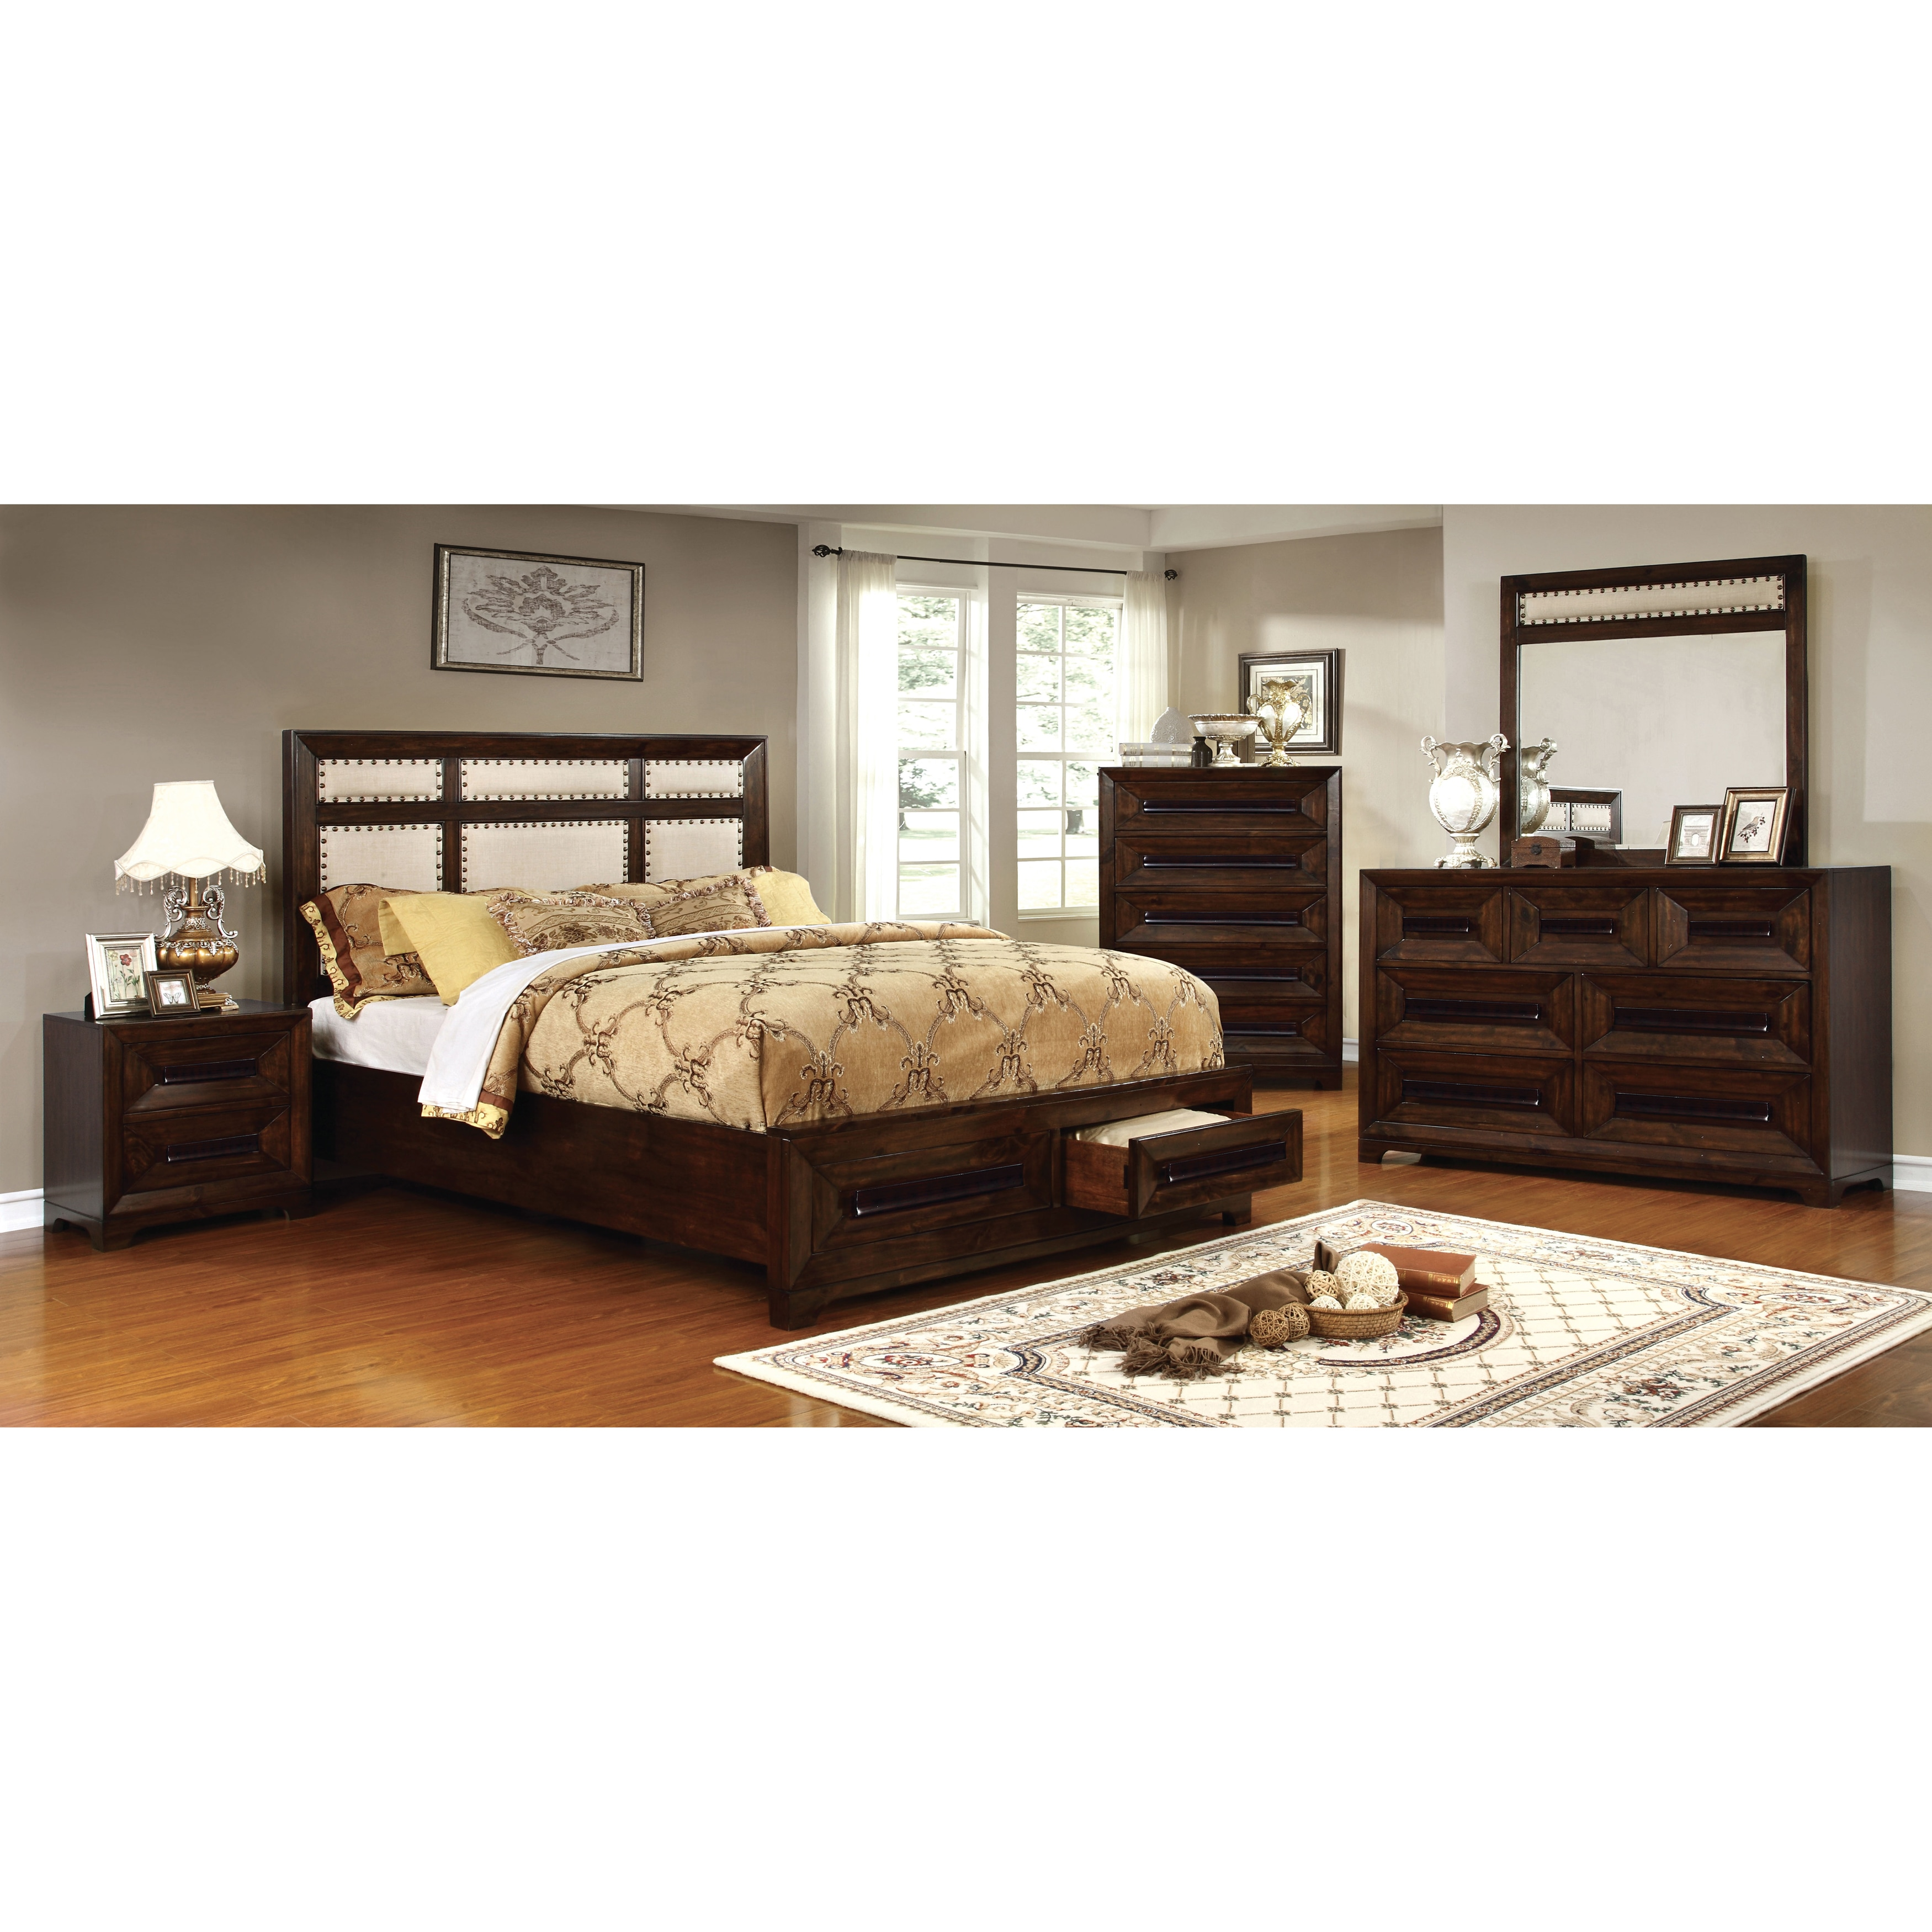 captains king wooden leather underneath of drawers medium platform modern grey and frames base white black lots cool storage cheap frame single sale queen beds mattress offers headboard space with full double drawer gloss bed size under ikea sleighorage